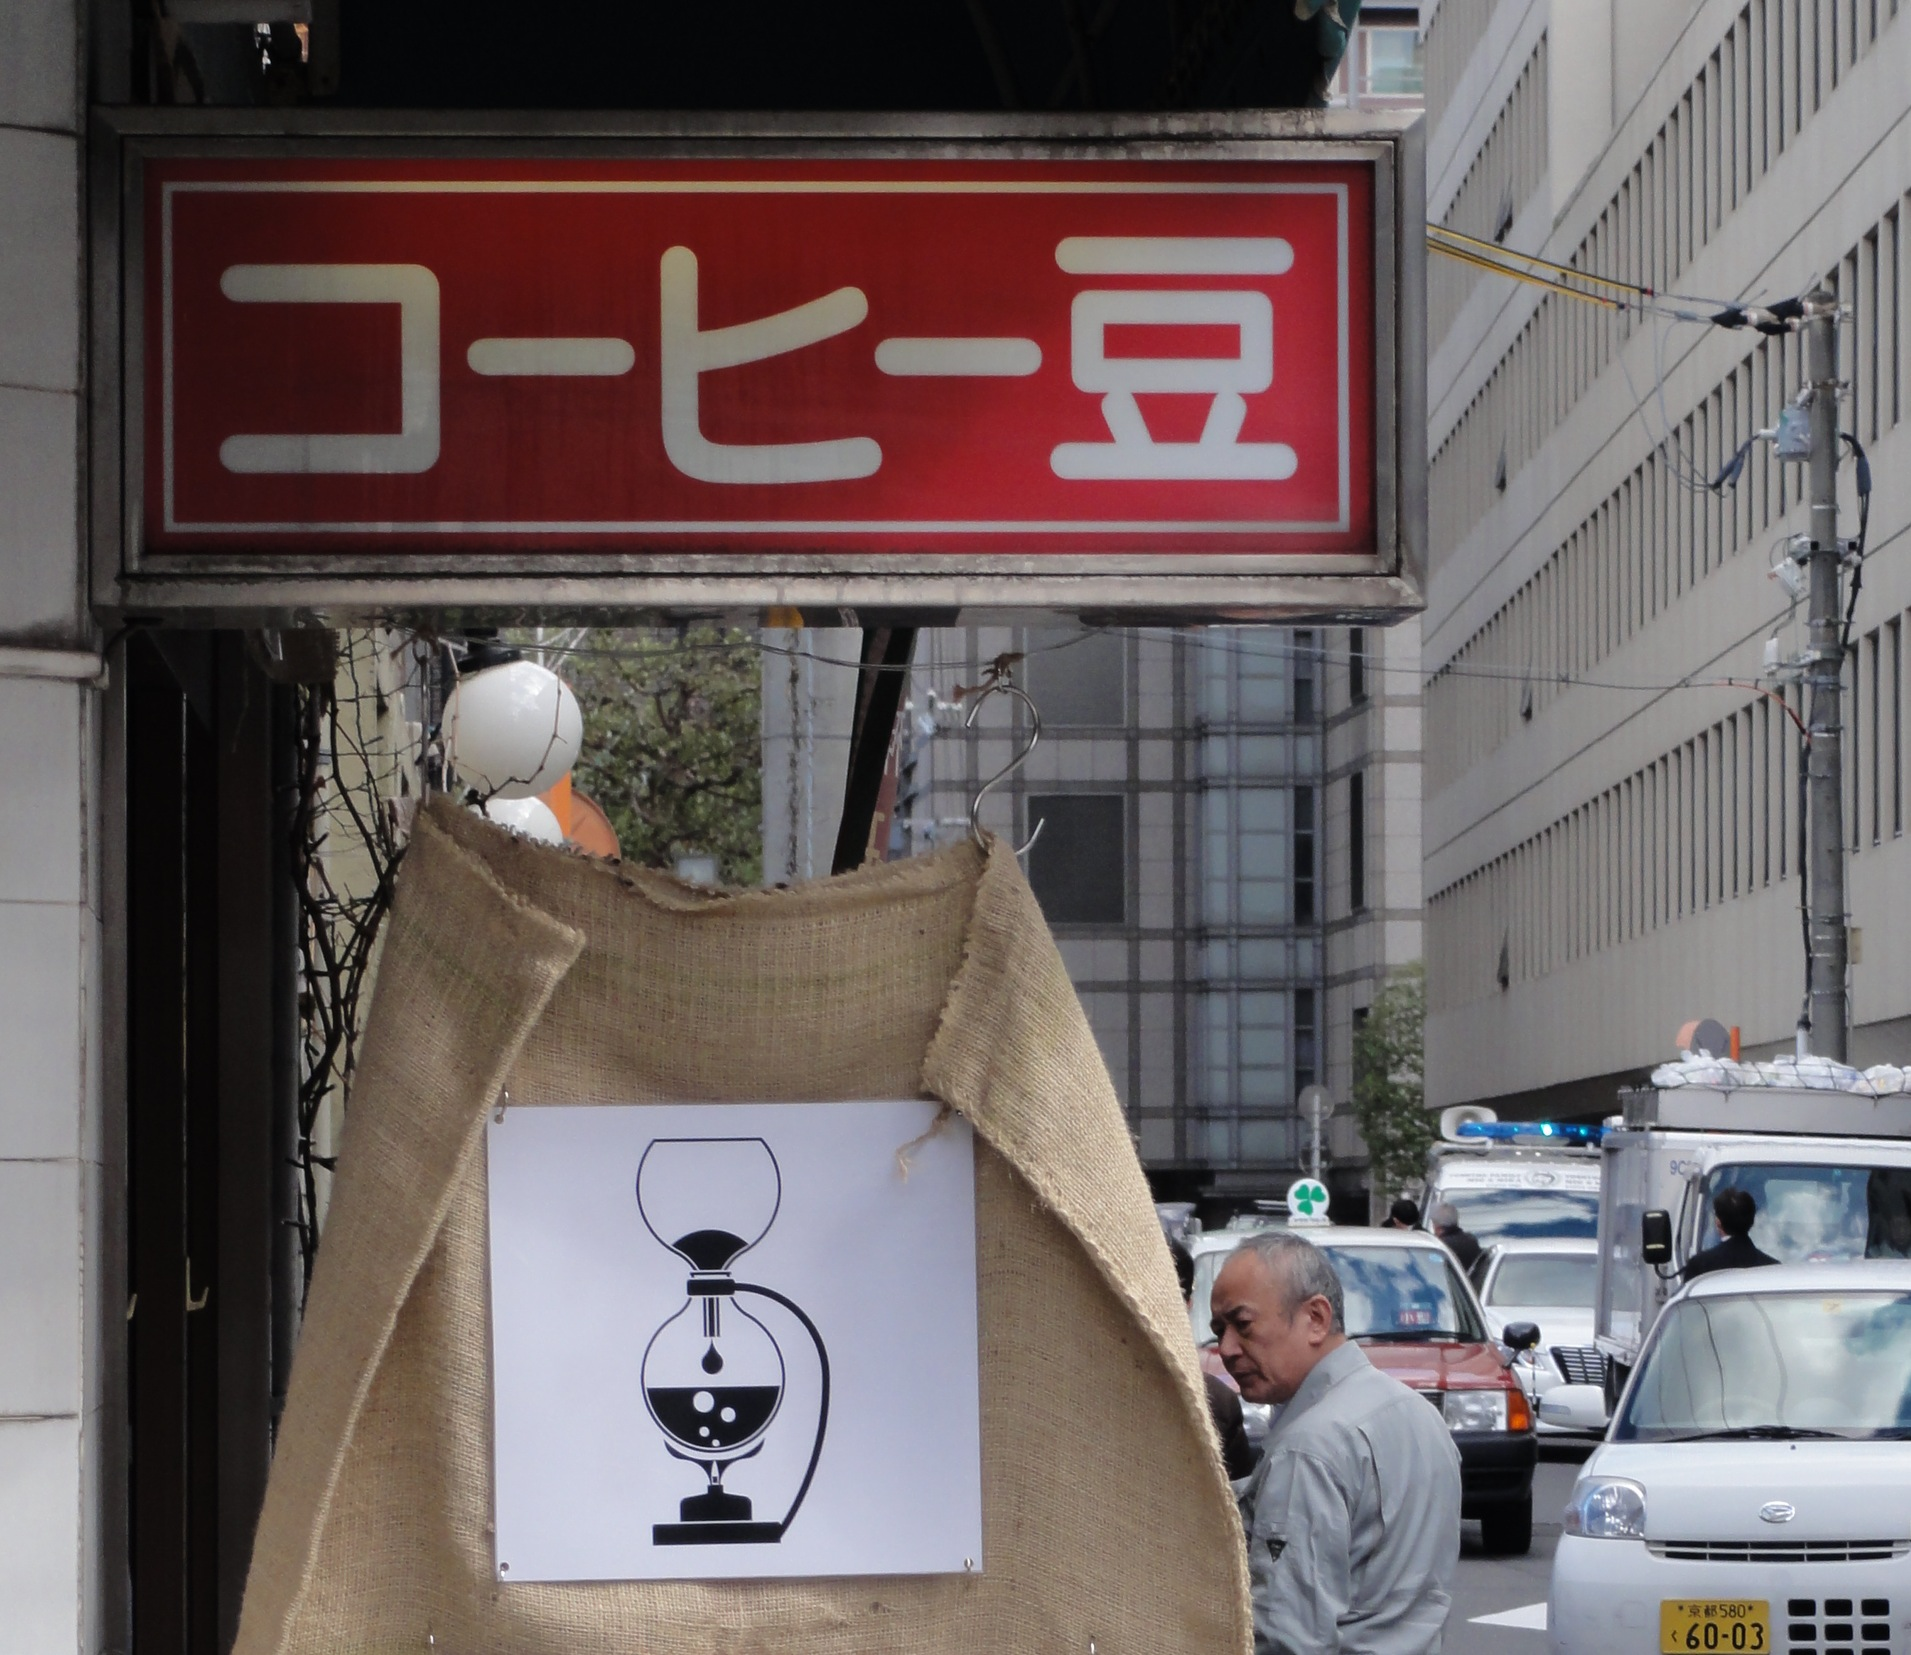 learn-kanji-Japanese-sign-coffee-296